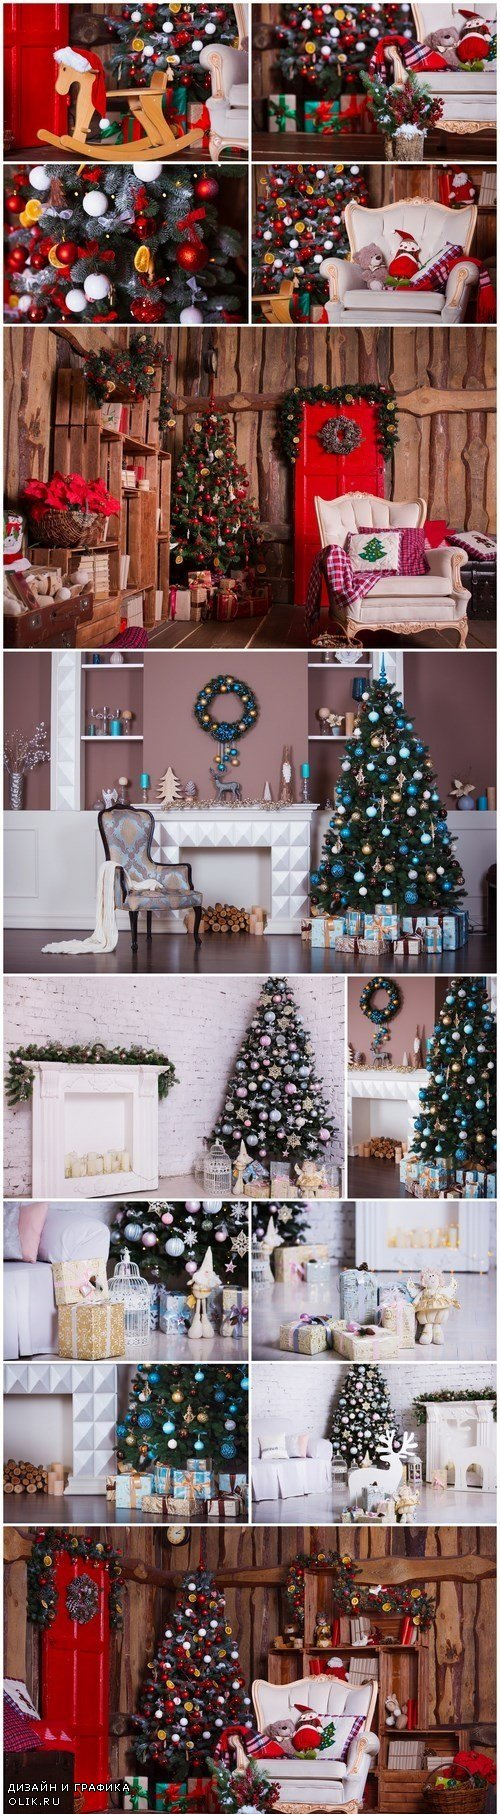 Interior room decorated in Christmas style - 13xUHQ JPEG